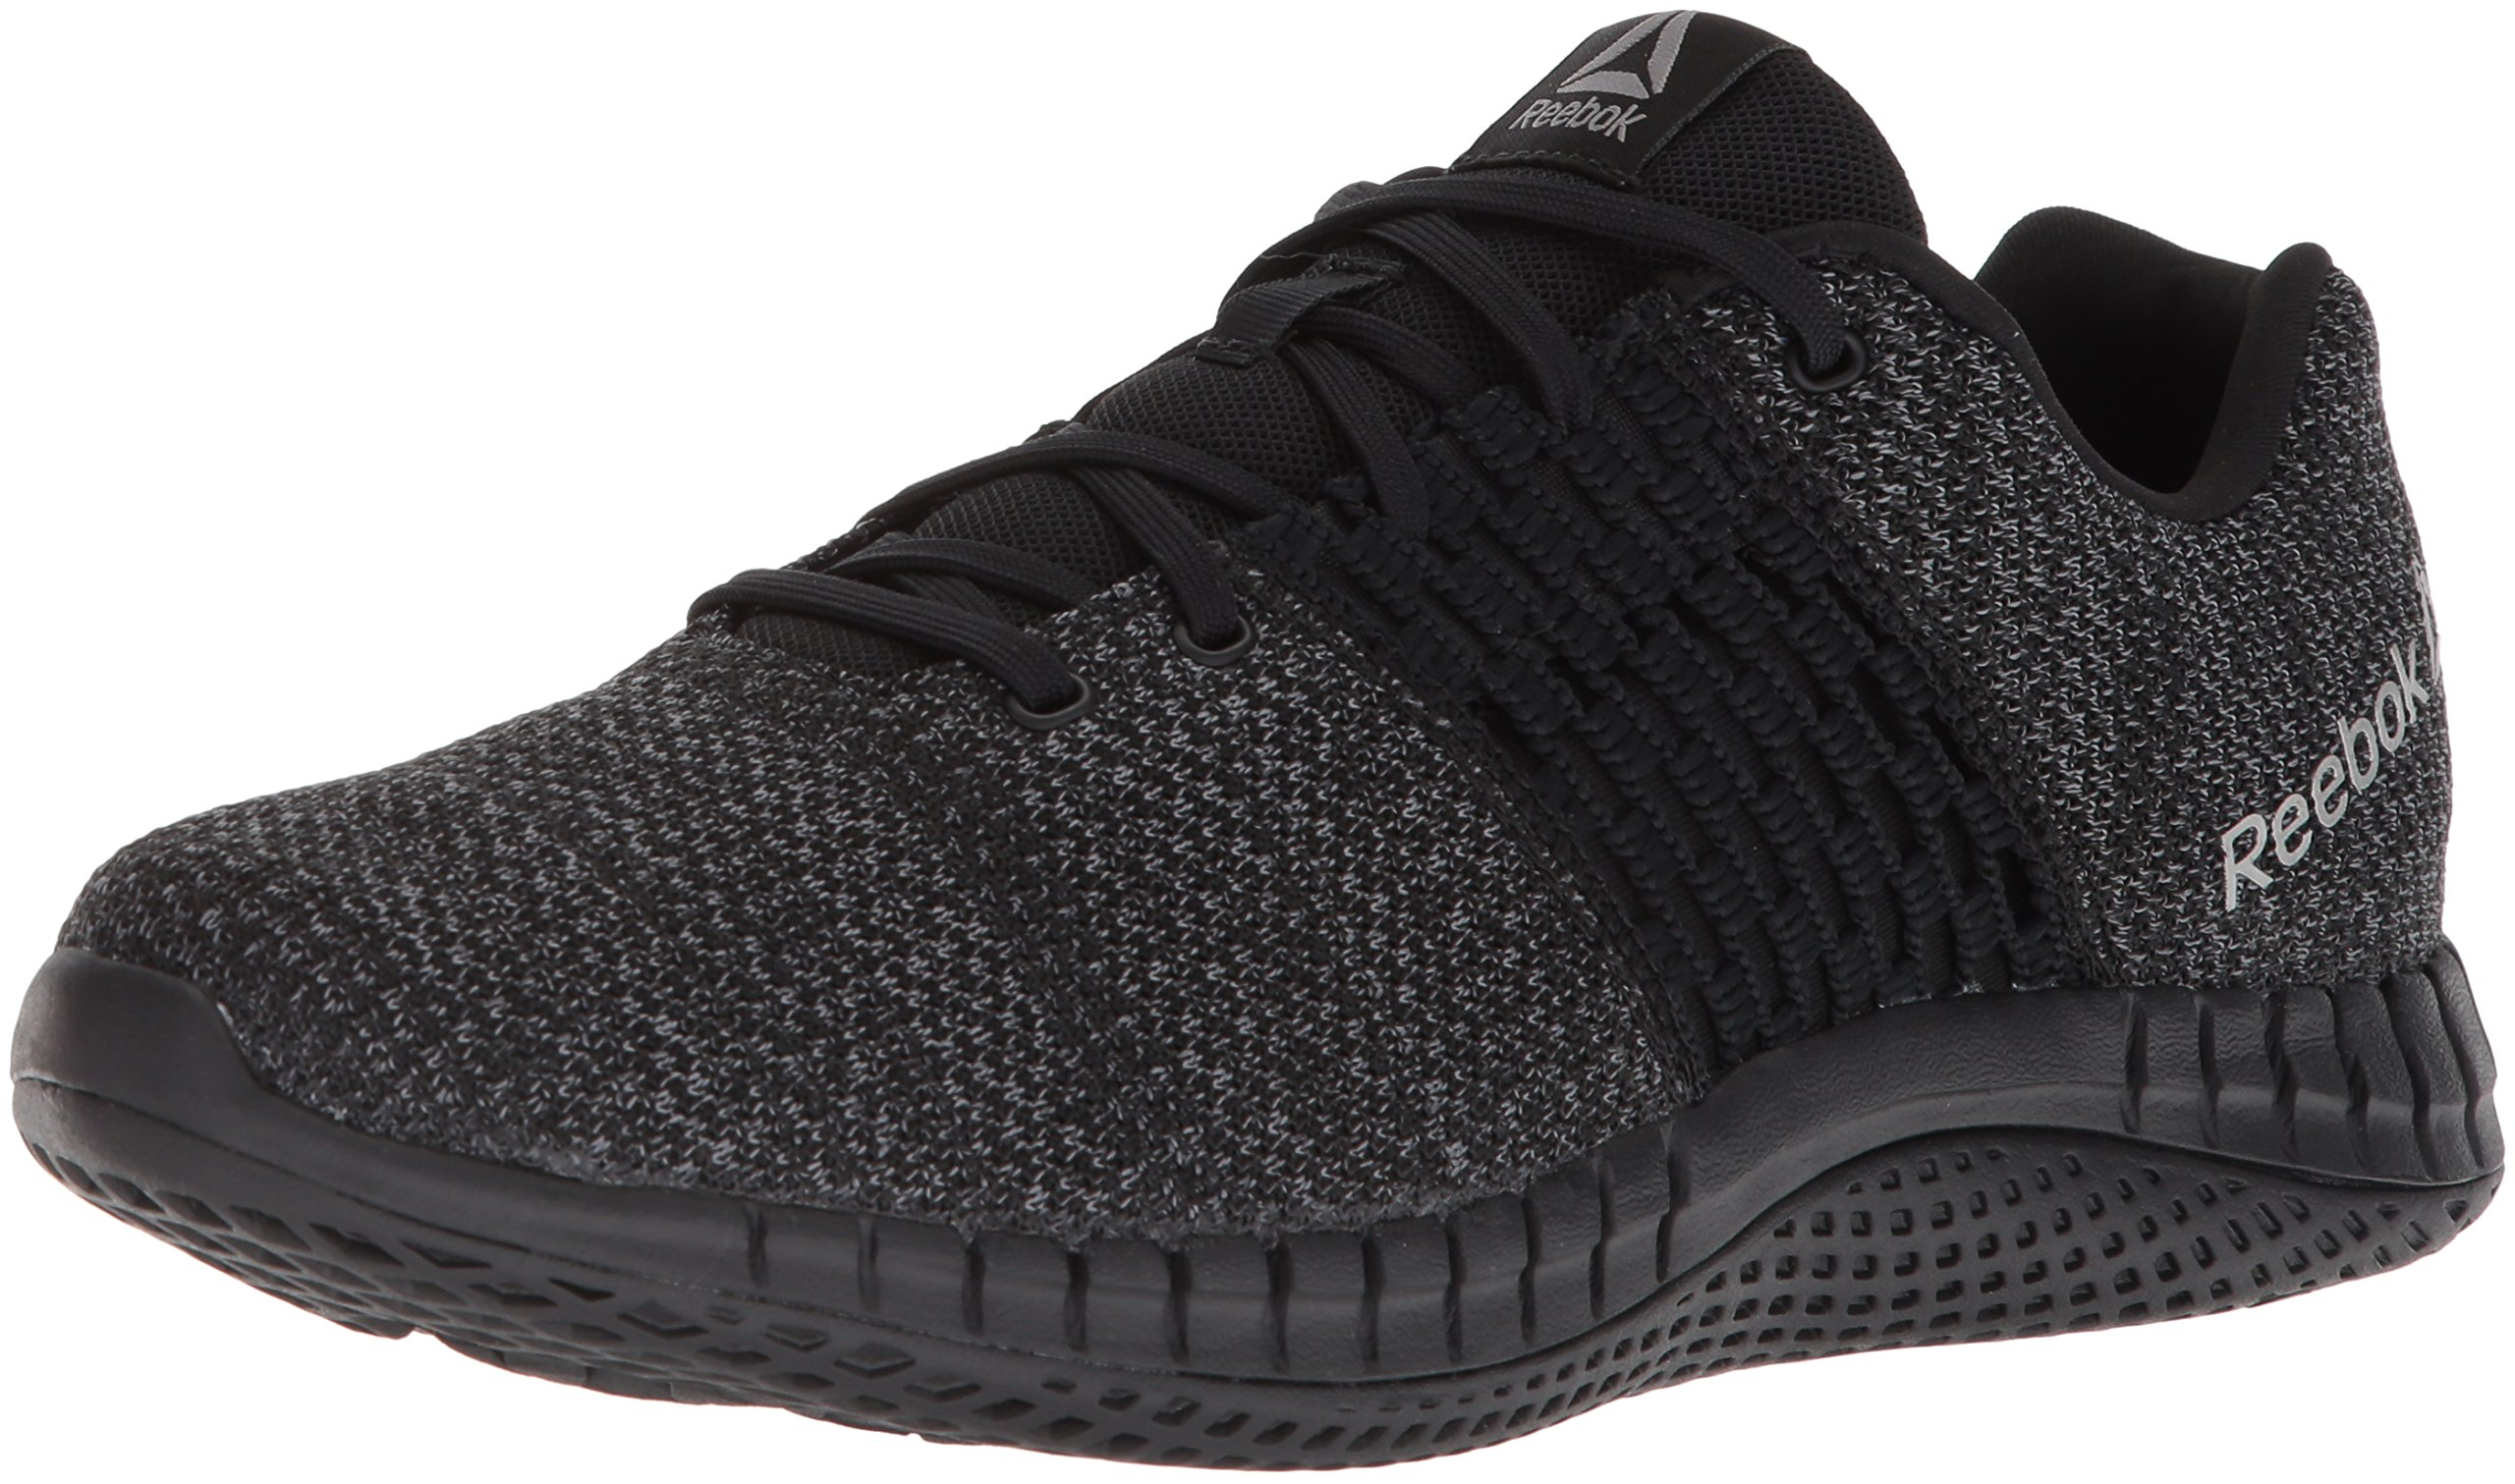 Reebok Men's Print Run Ultraknit Shoe, Black/Coal/Asteroid dust, 10 M US by Reebok